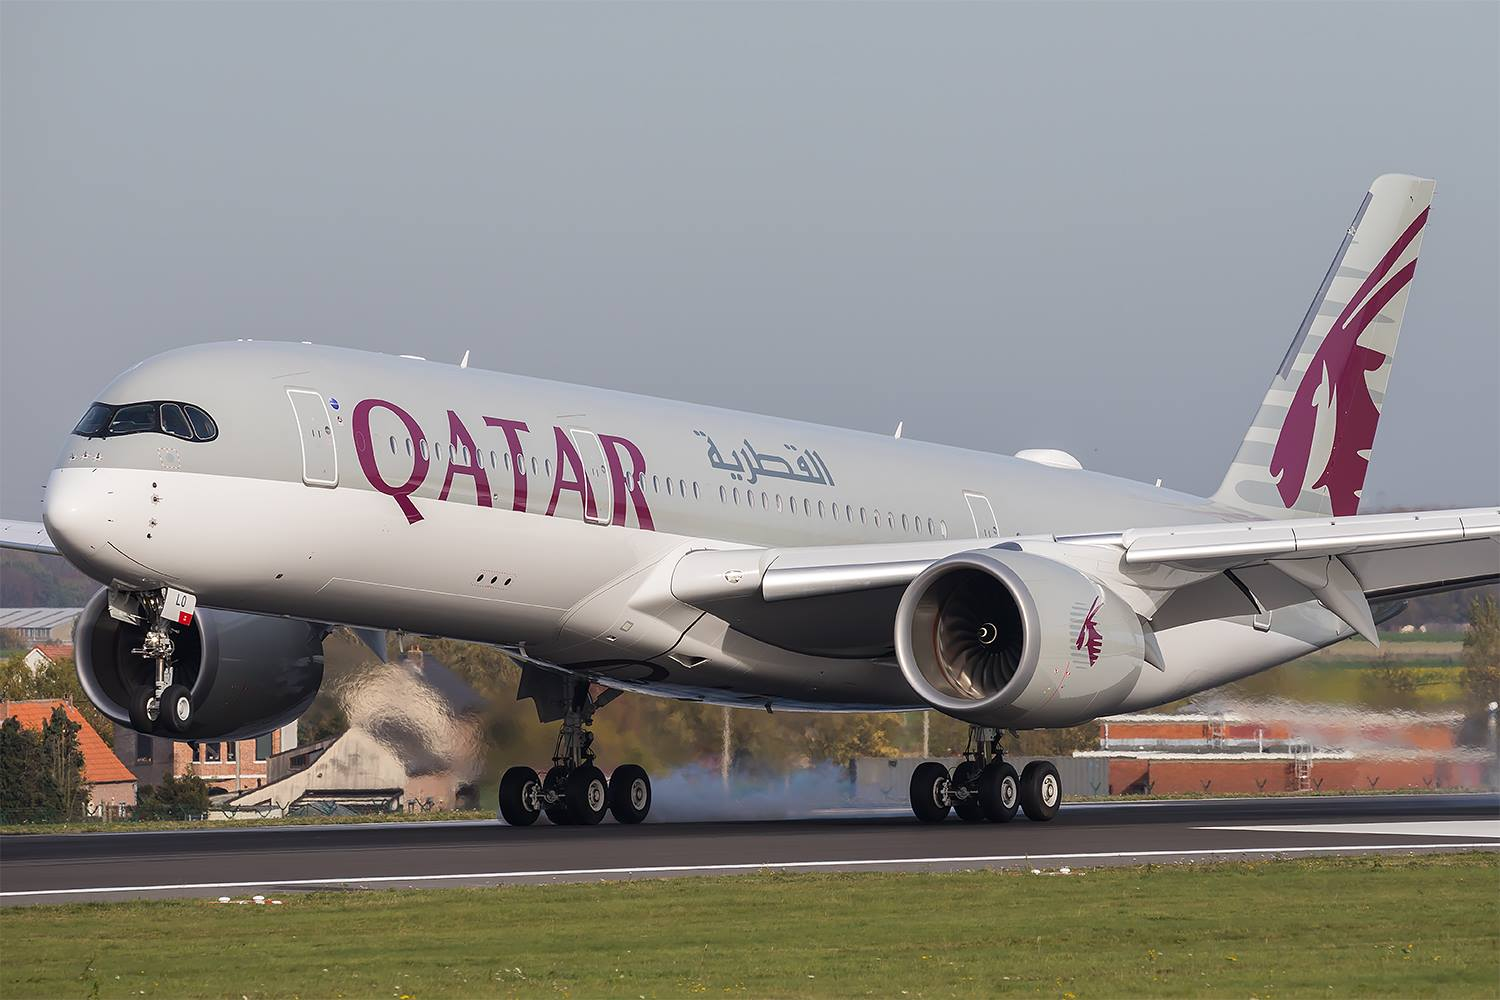 Incident: Qatar Airways A350 stall warning over Iran